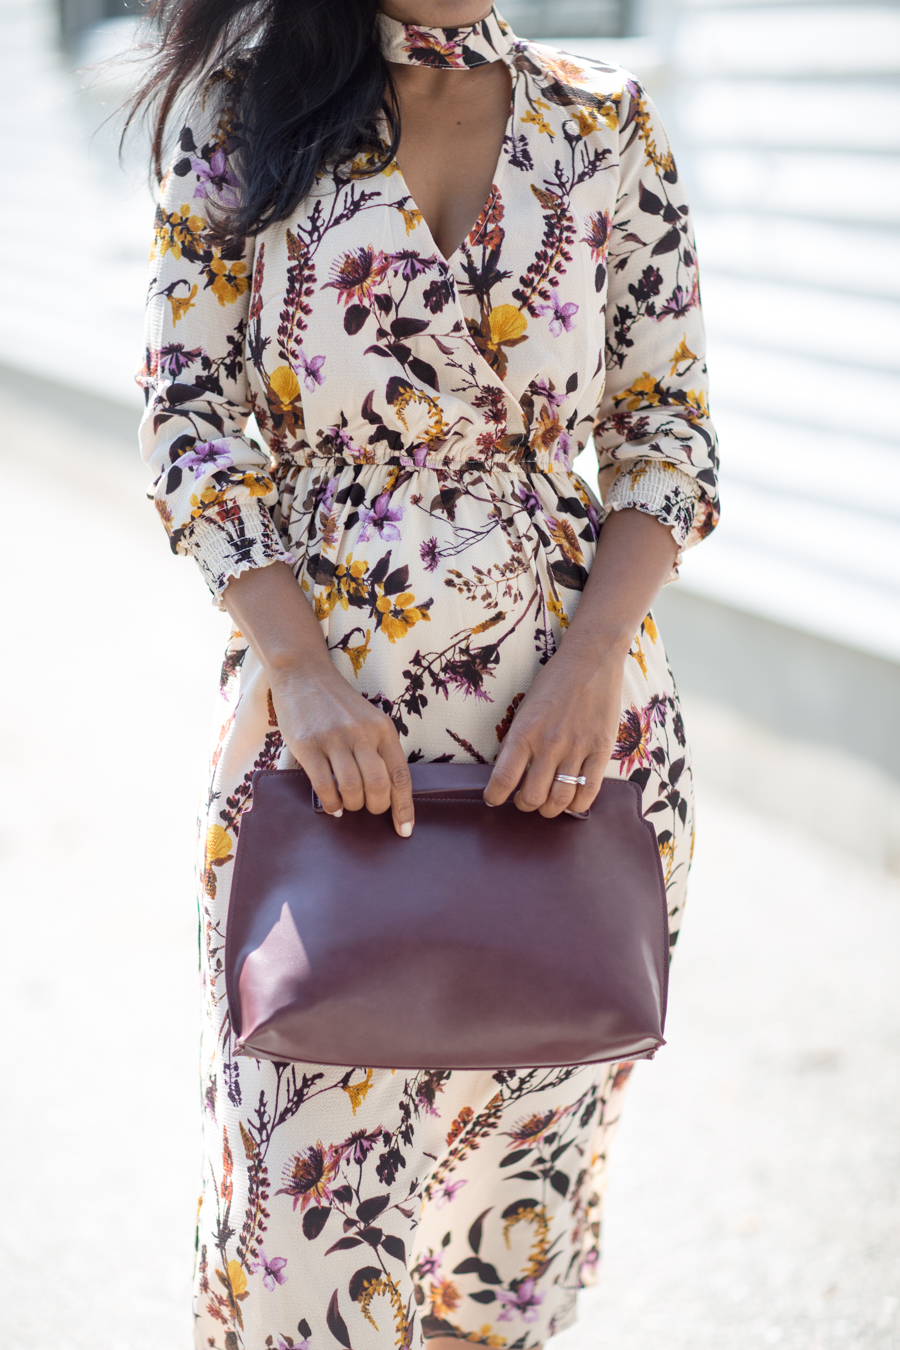 style tips, personal style, work wardrobe, work outfits, office style, wardrobe stylist, florals, pre-fall style, nude pumps, choker neck, corporate chic